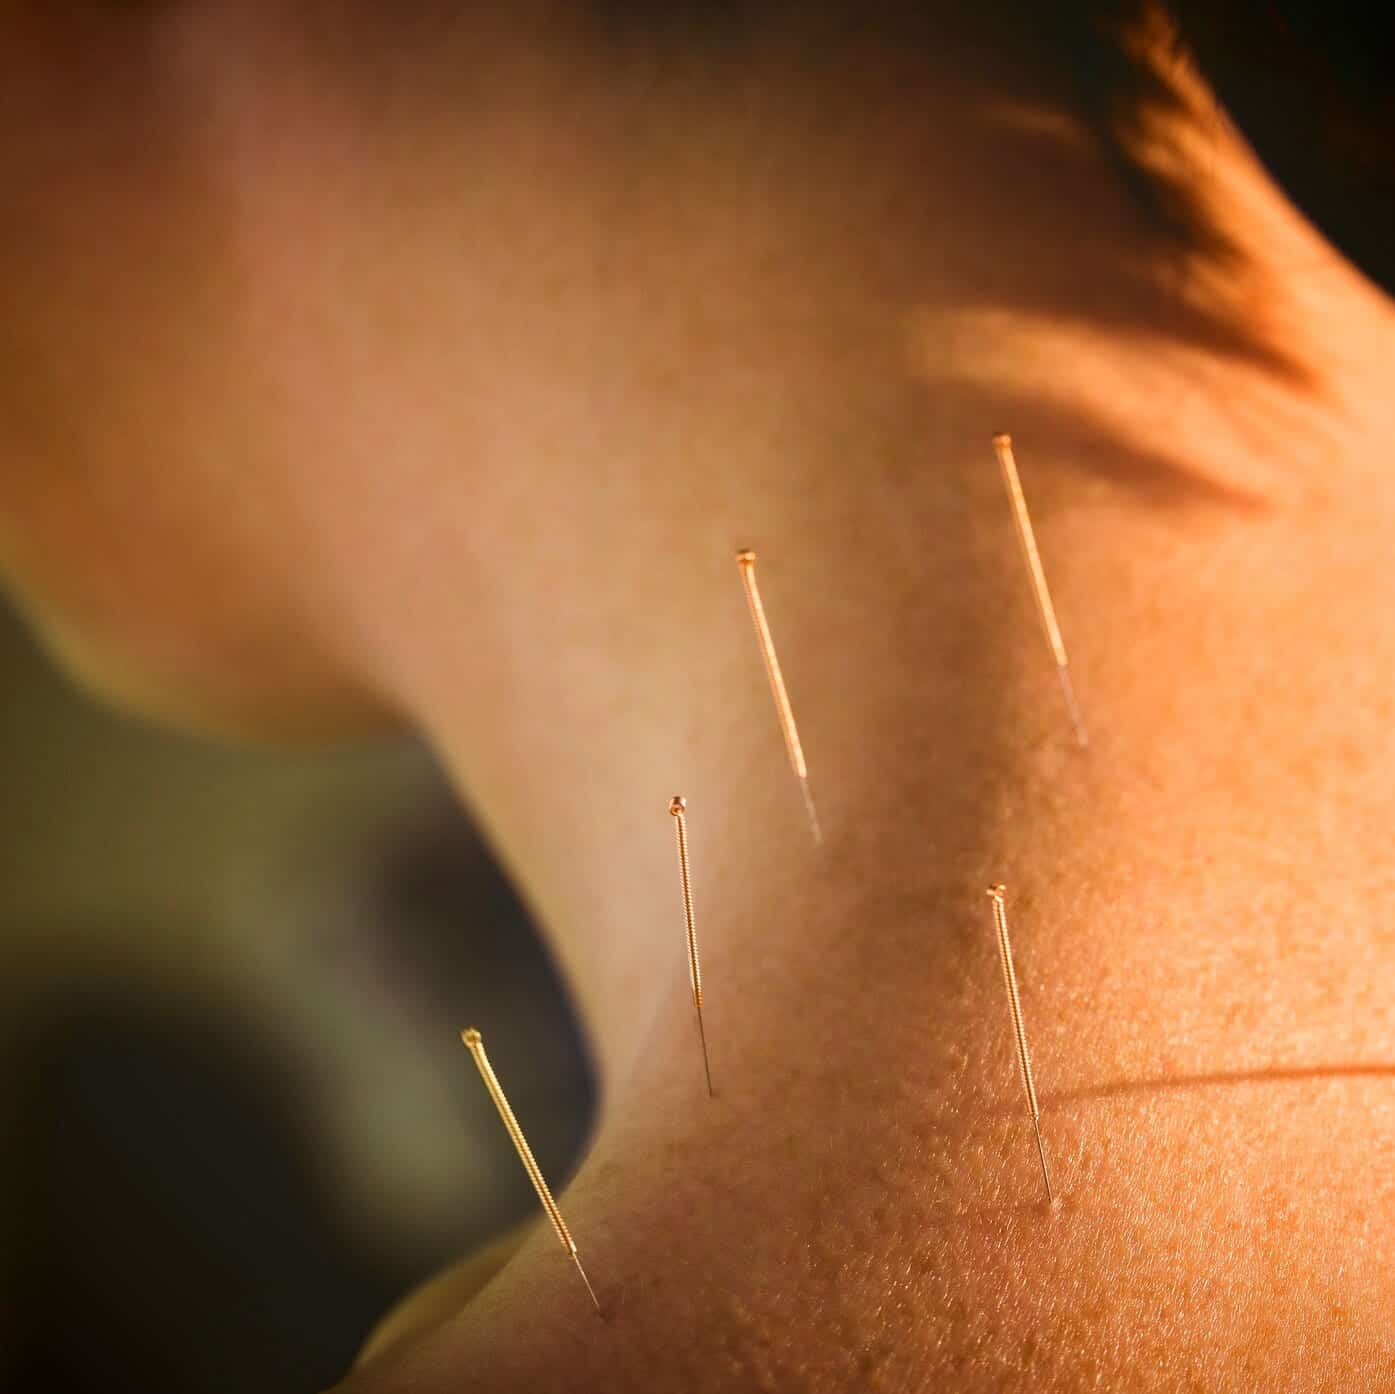 Medical Acupuncture treatment for East London at The Plane Tree